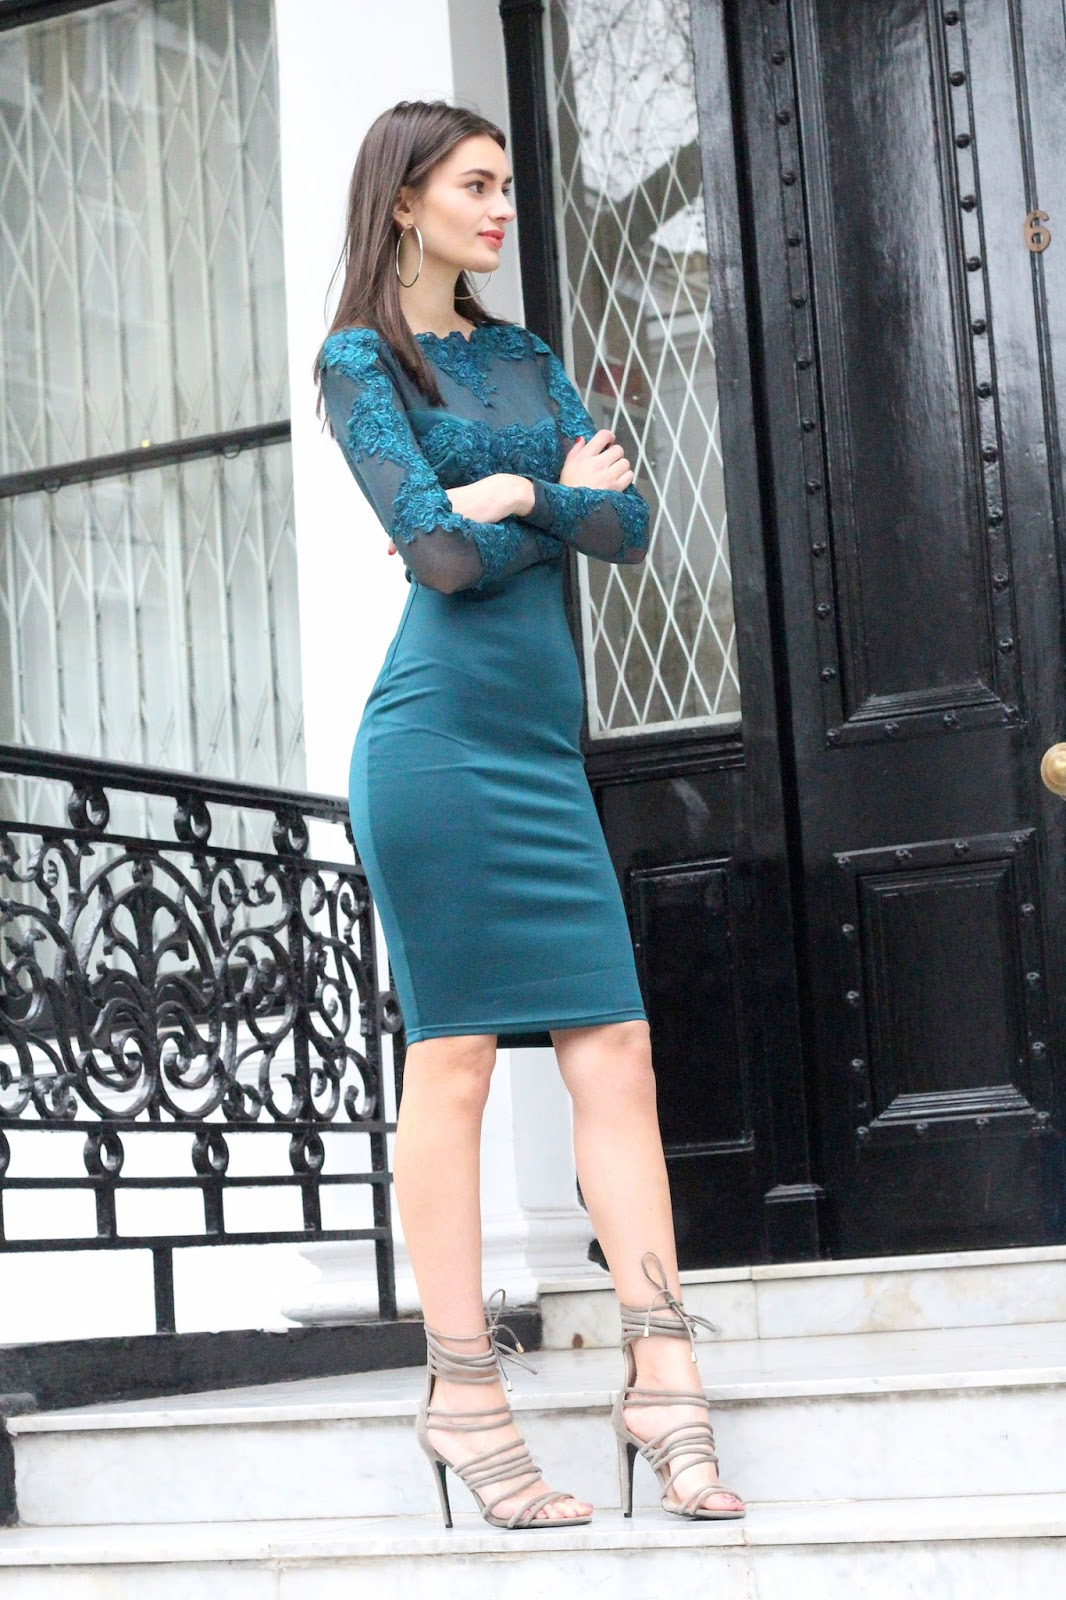 peexo fashion blogger wearing midi dress and strappy heels